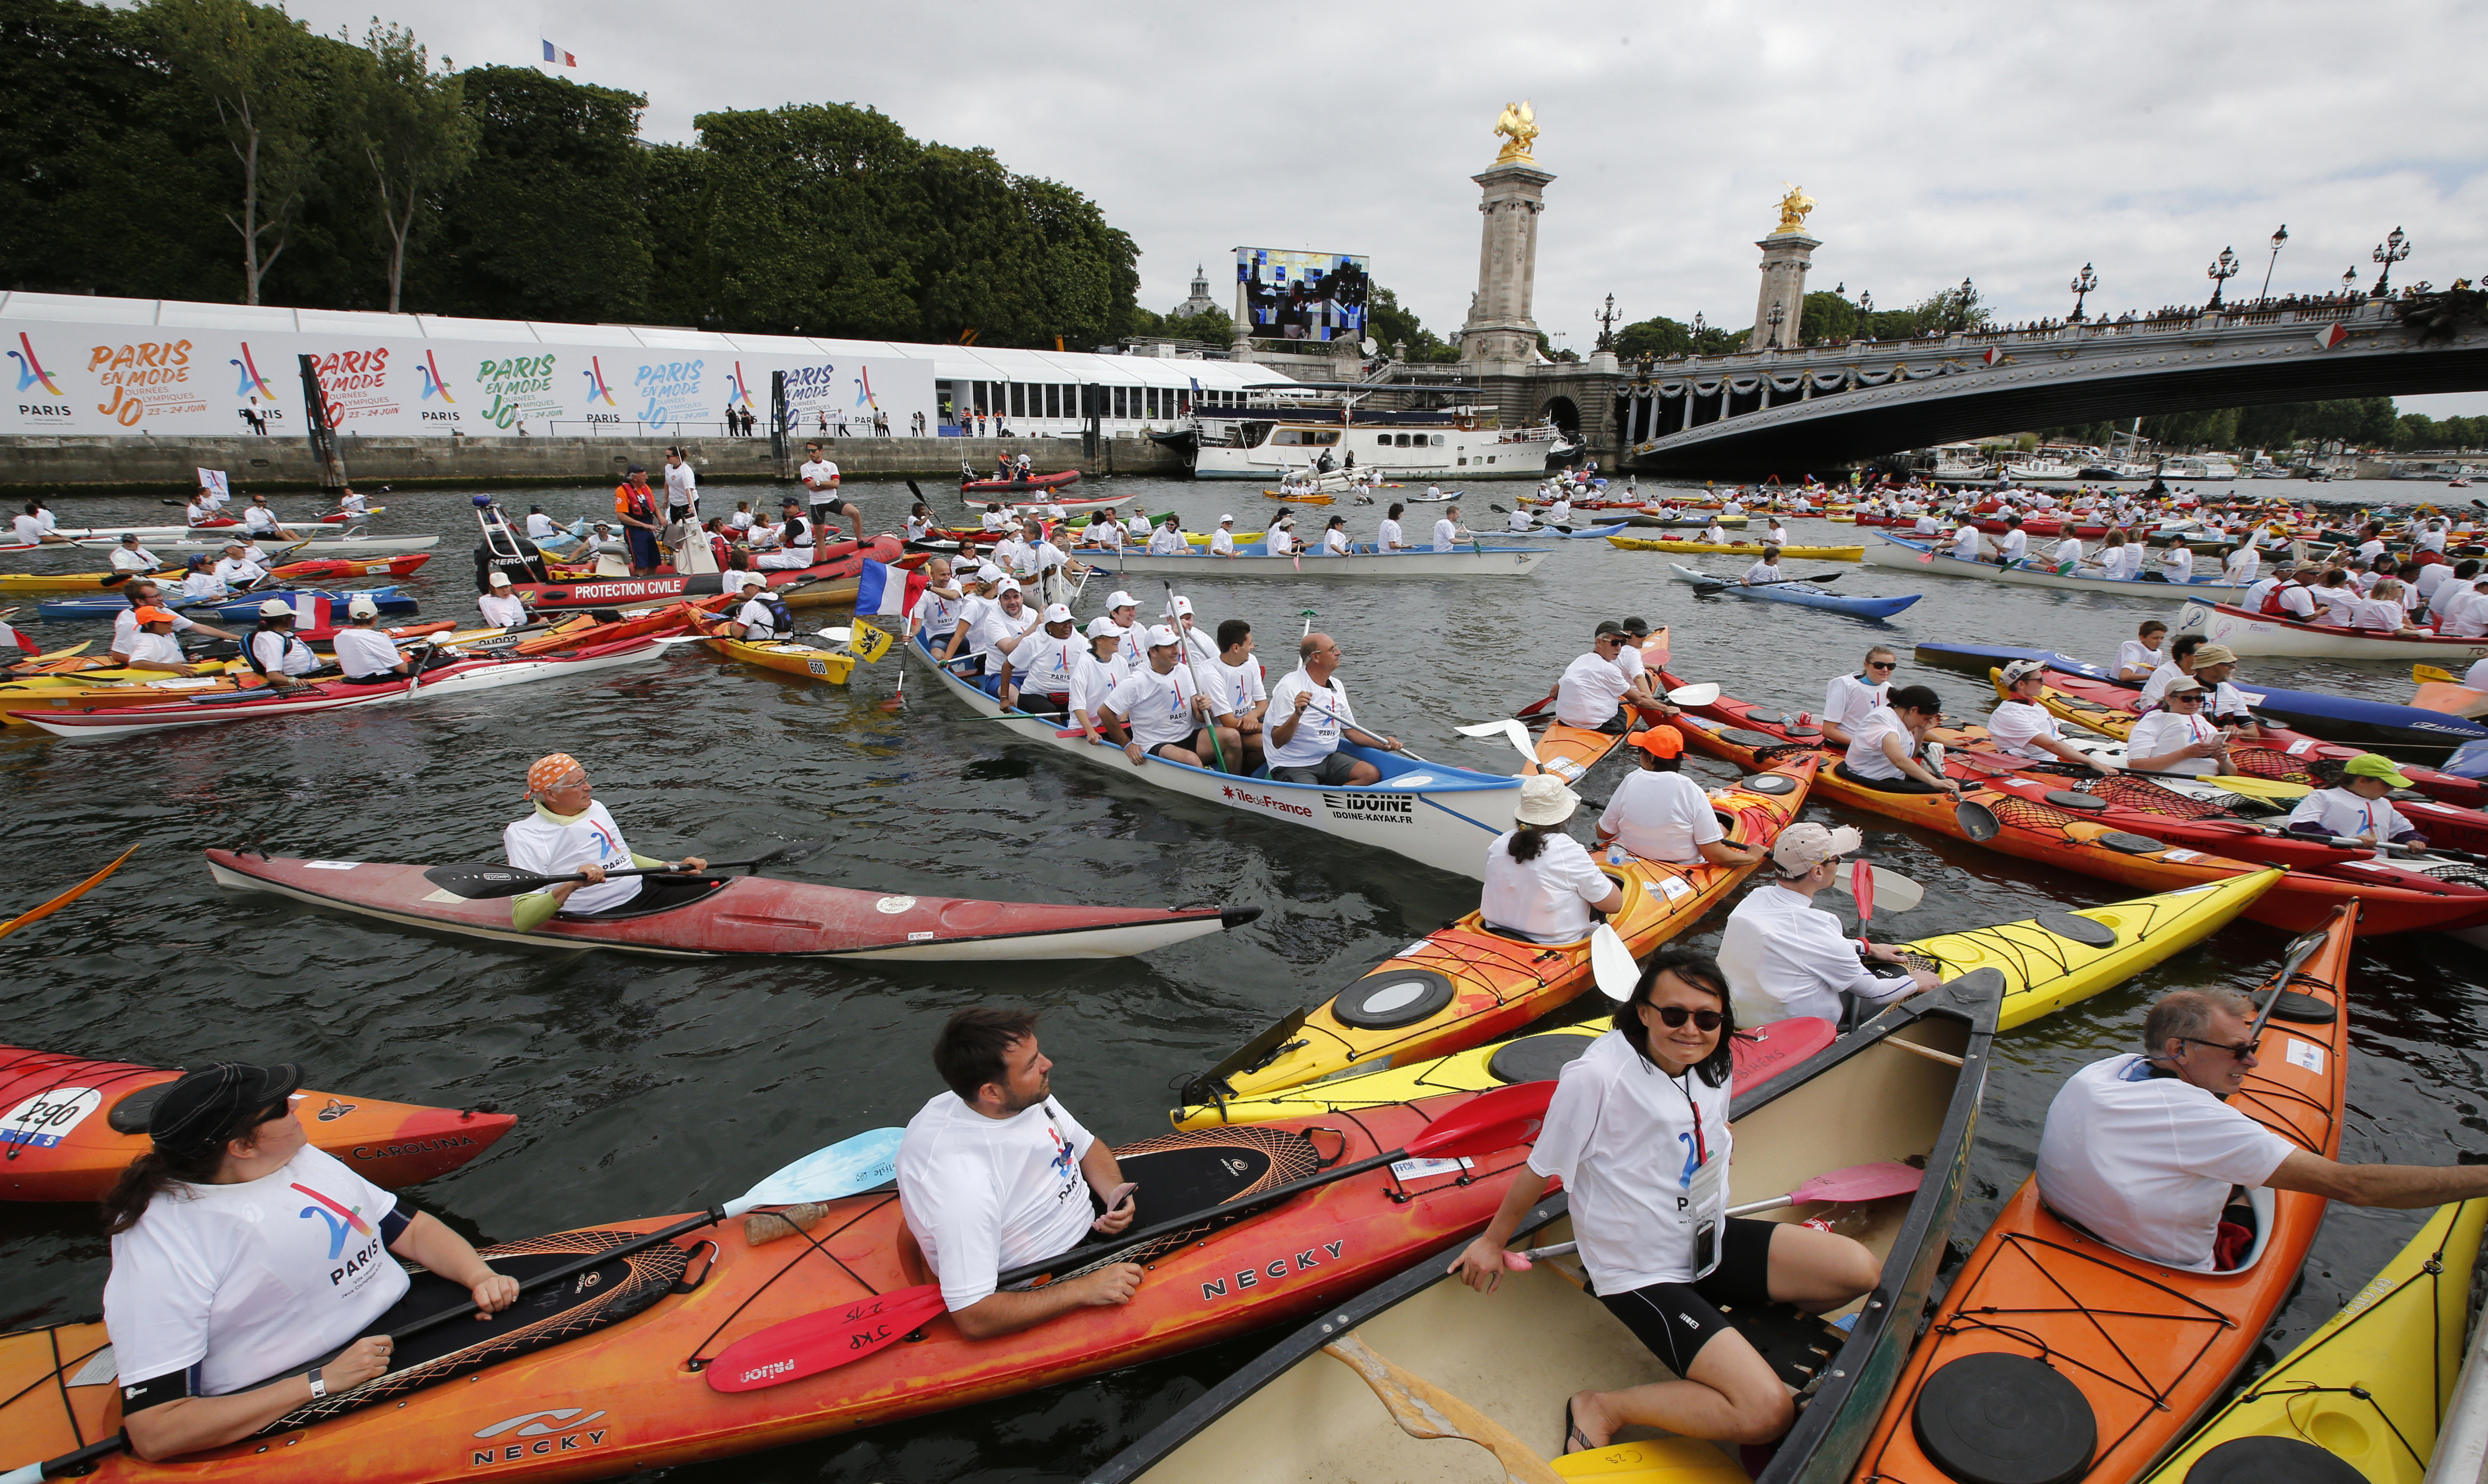 Paris shows off in race against Los Angeles for 2024 Olympic Games